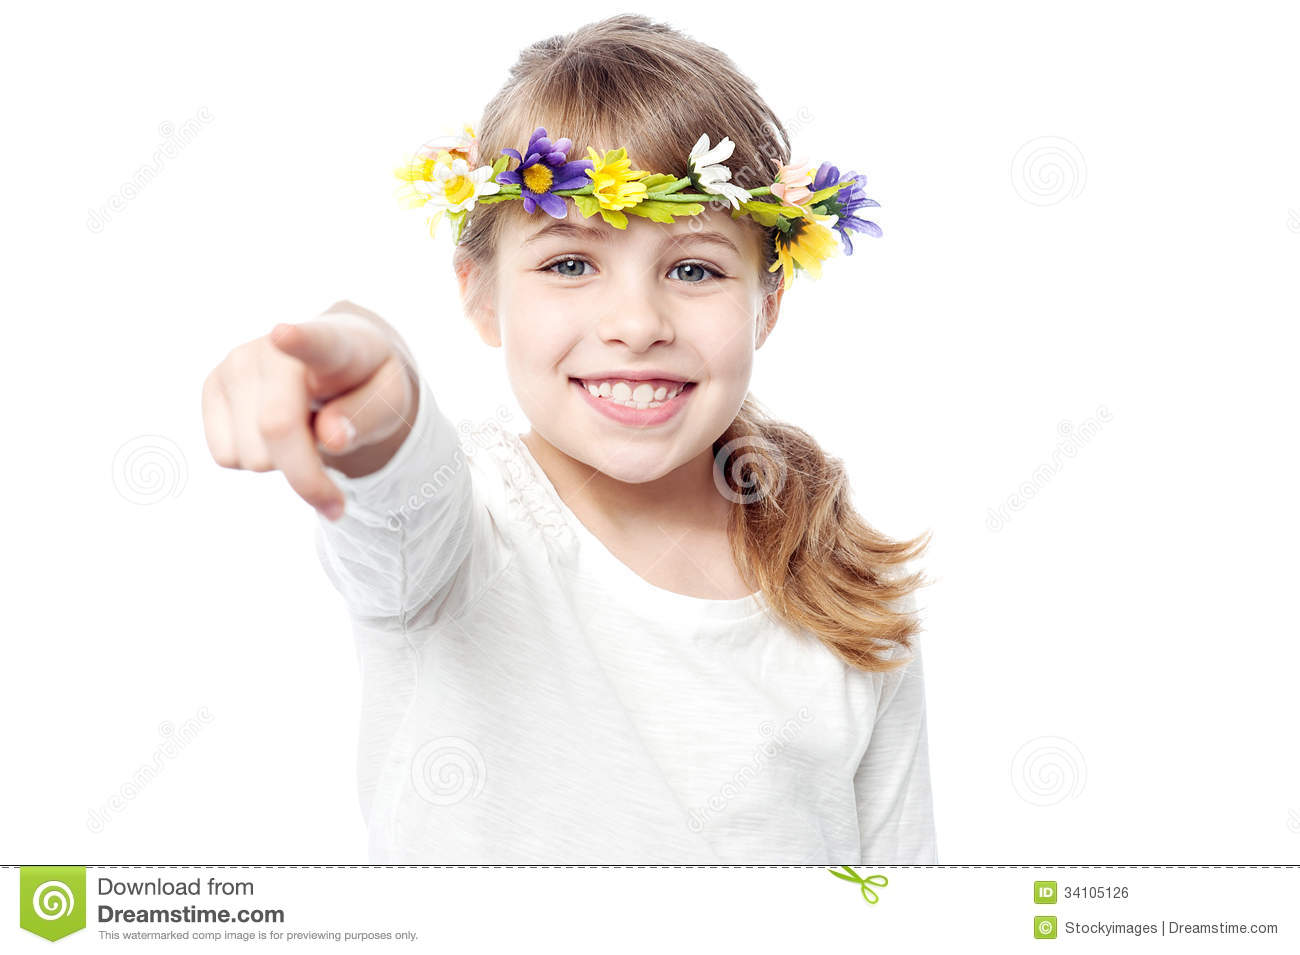 Smiling Girl With Flower Crown Stock Photo